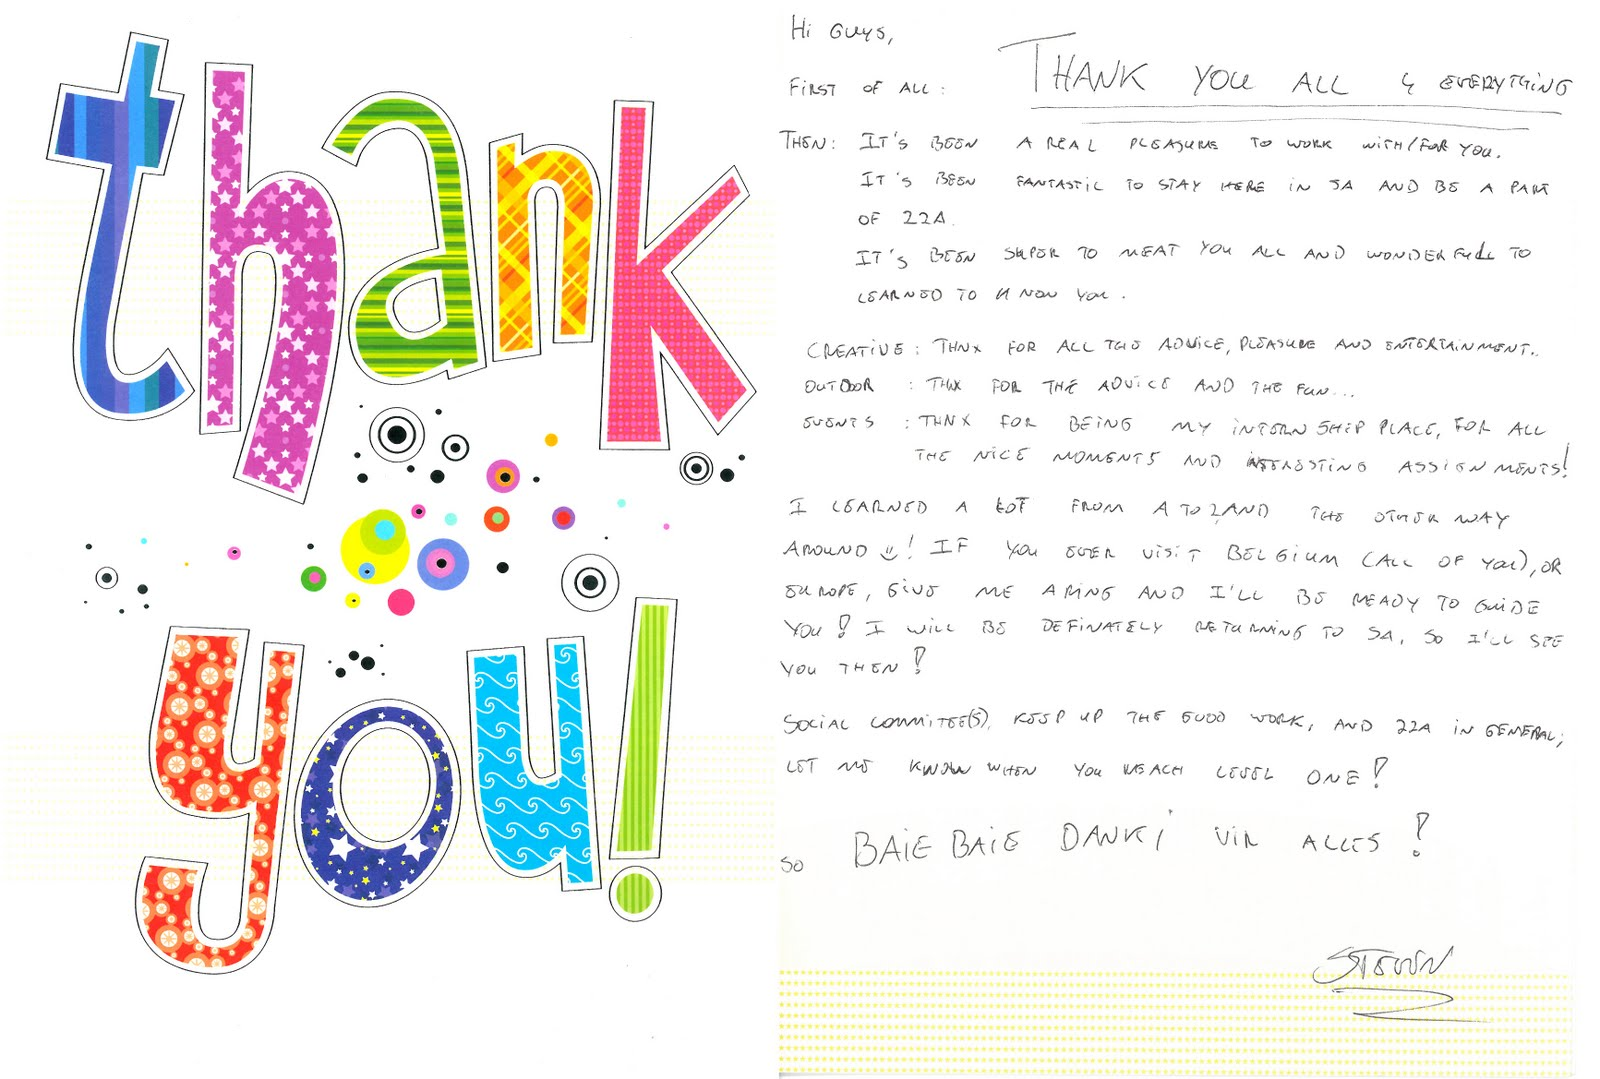 thank you notes to colleagues info best goodbye letter for work sample job application letter